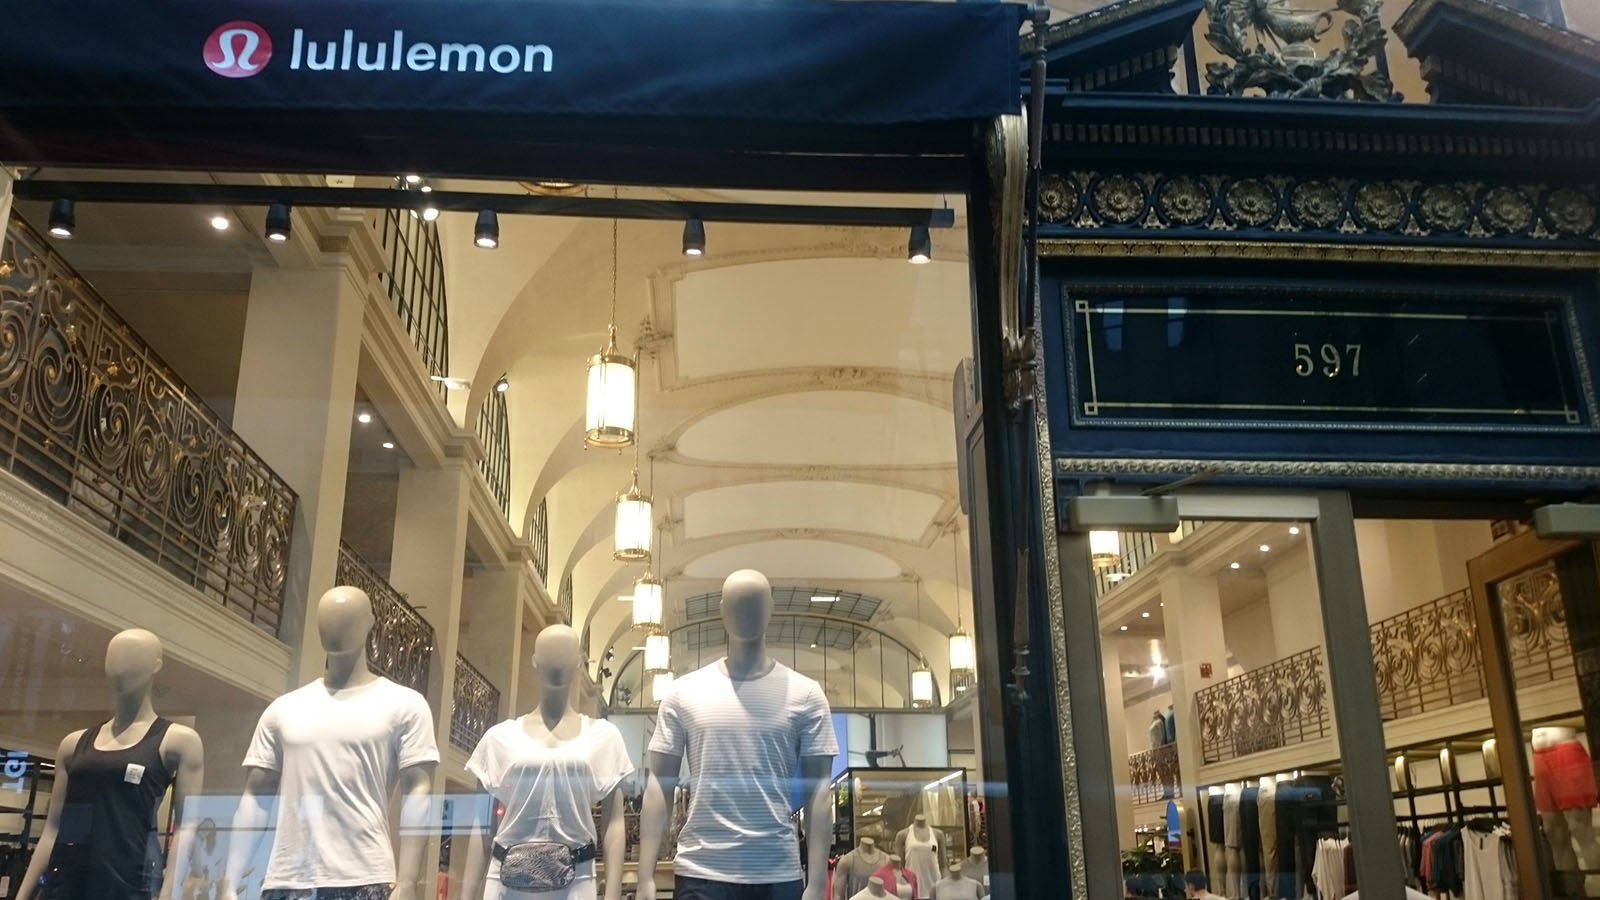 lululemon 597 5th avenue